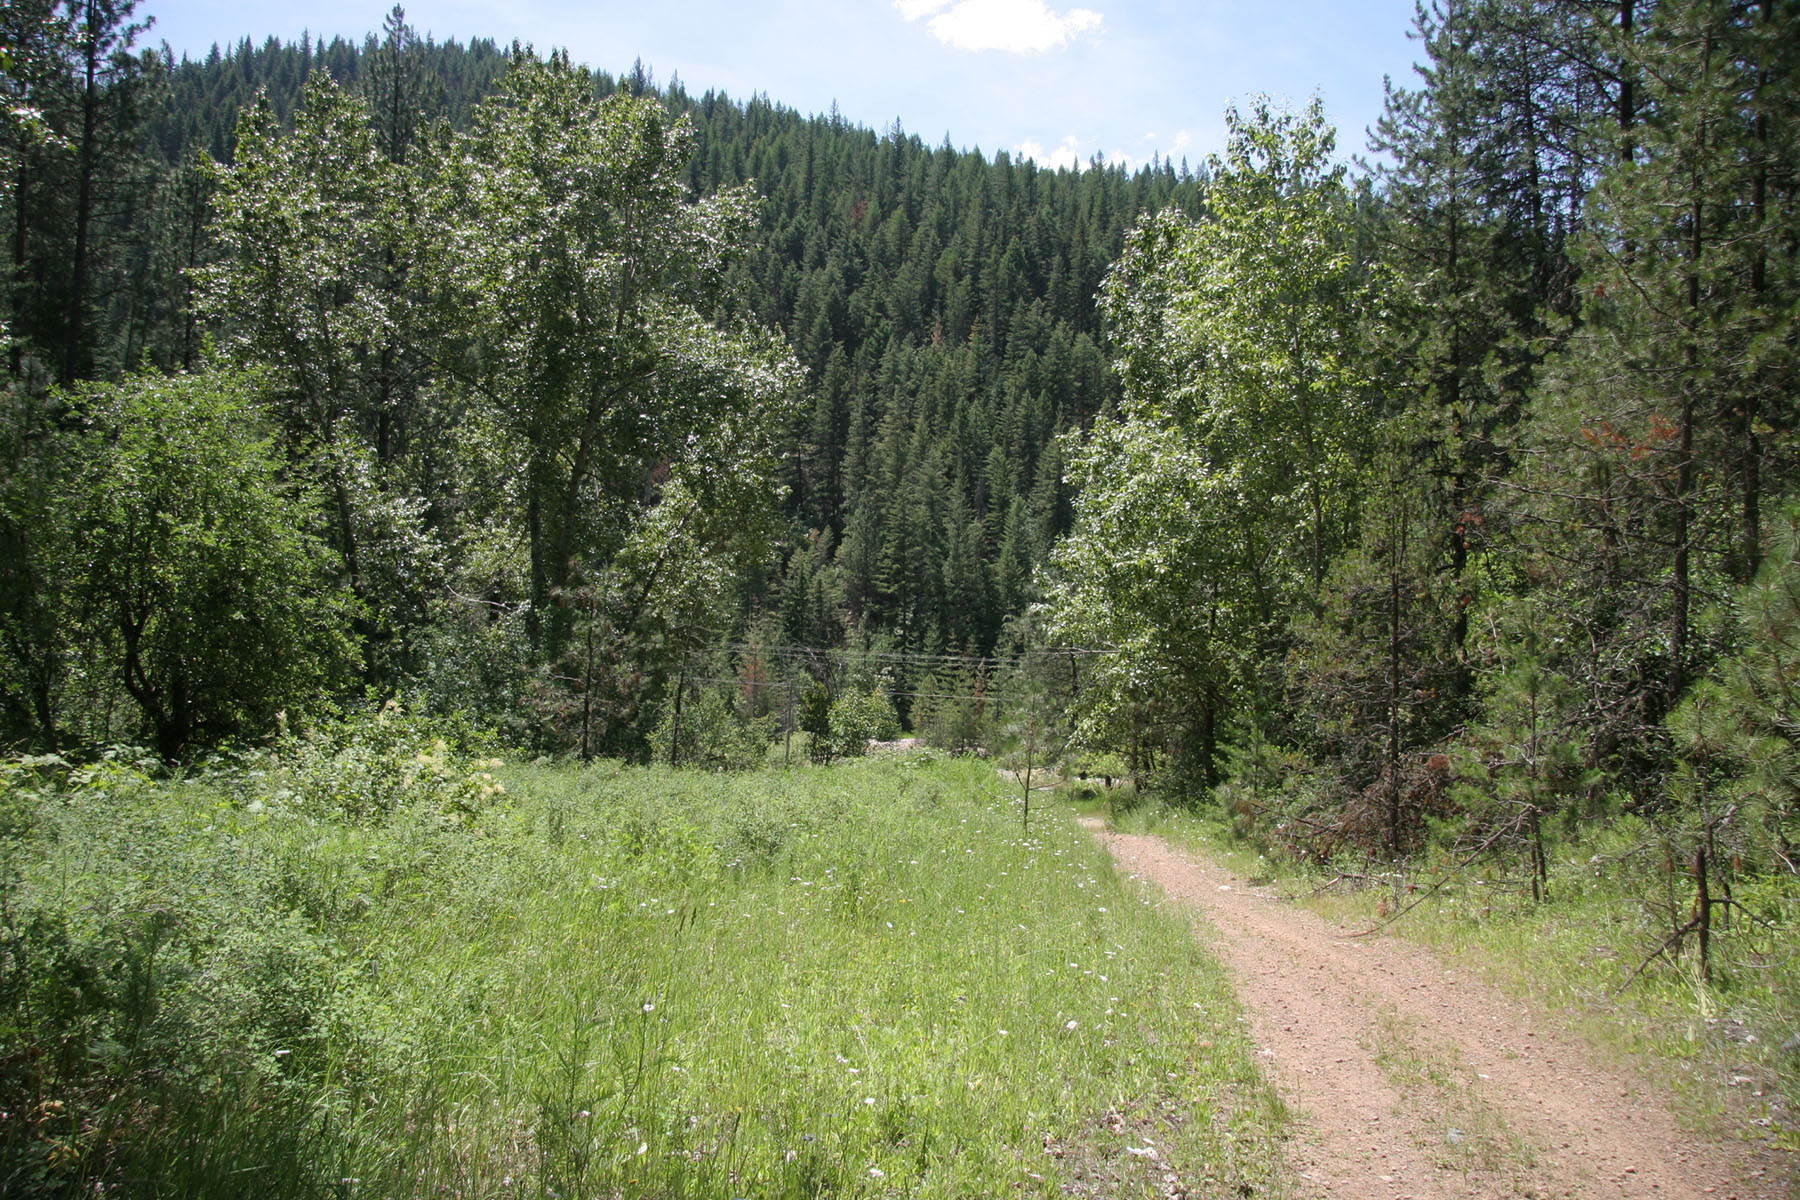 Terreno por un Venta en 14 acres overlooking the beautiful Notrh Idaho mountains NNA 4 East Fork Pine Creek Rd Pinehurst, Idaho, 83850 Estados Unidos